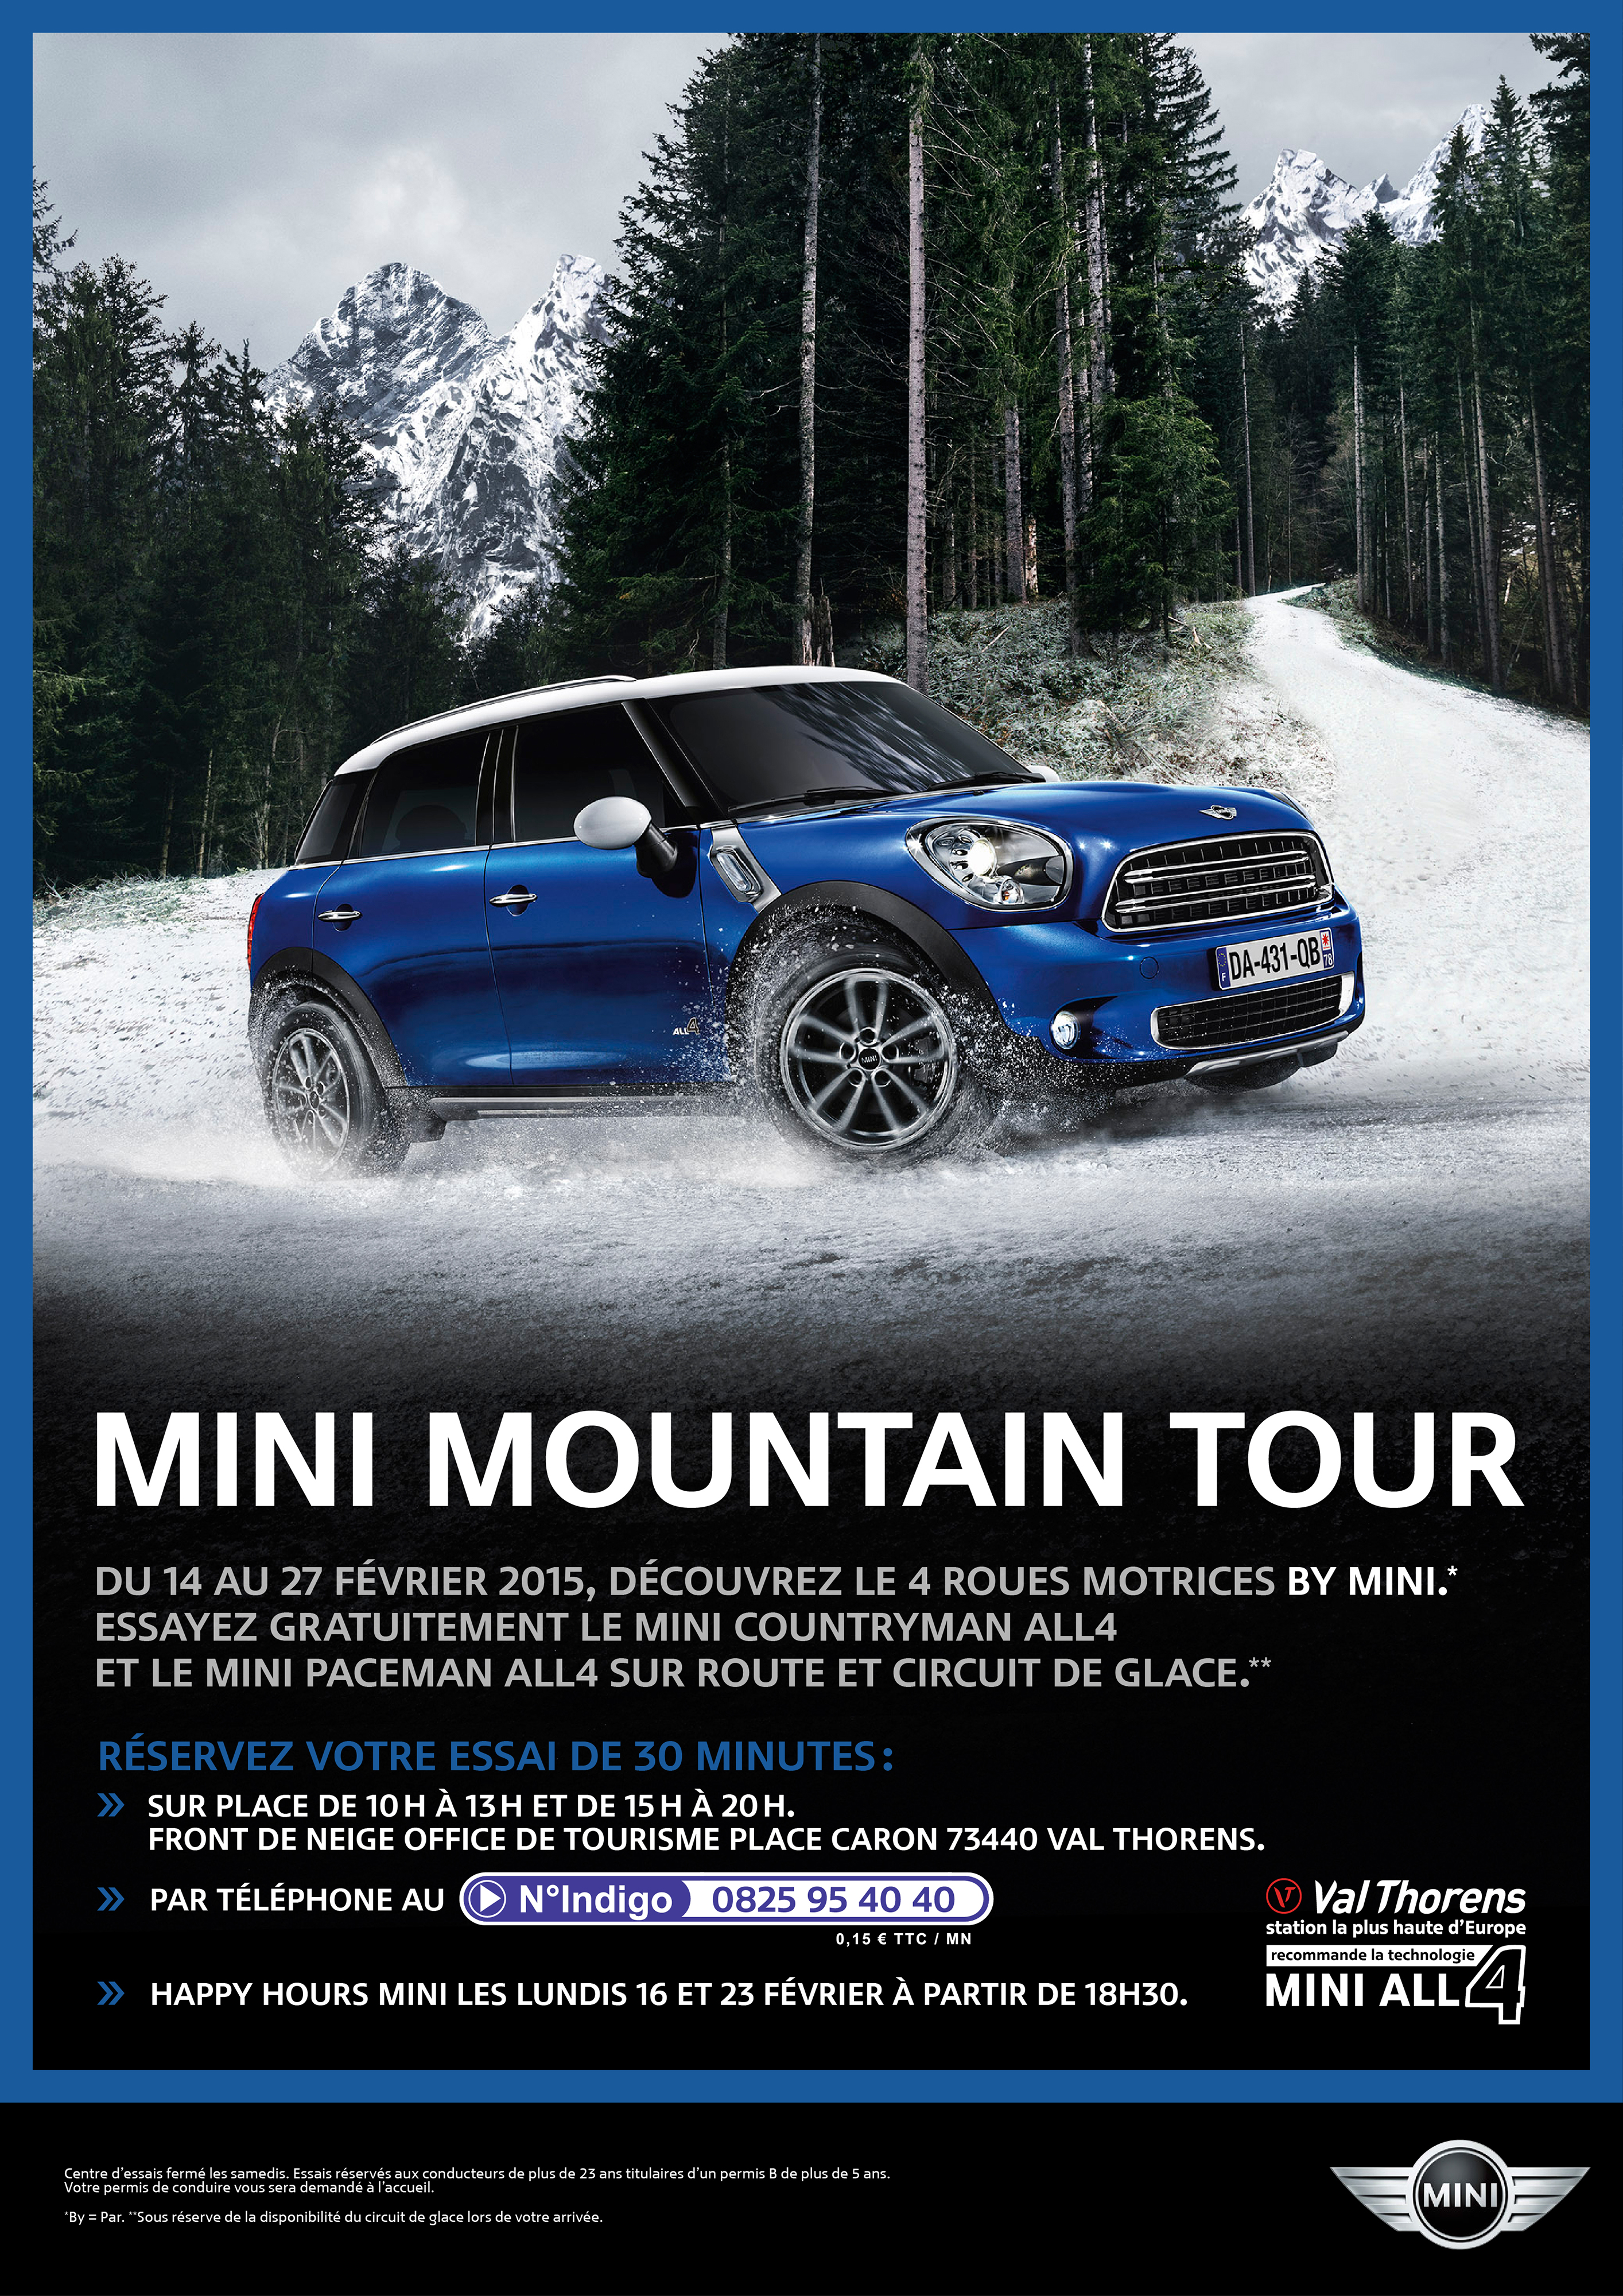 MINI Mountain_Tour_Affiche_297x420 6 JAN 2015-01.jpg